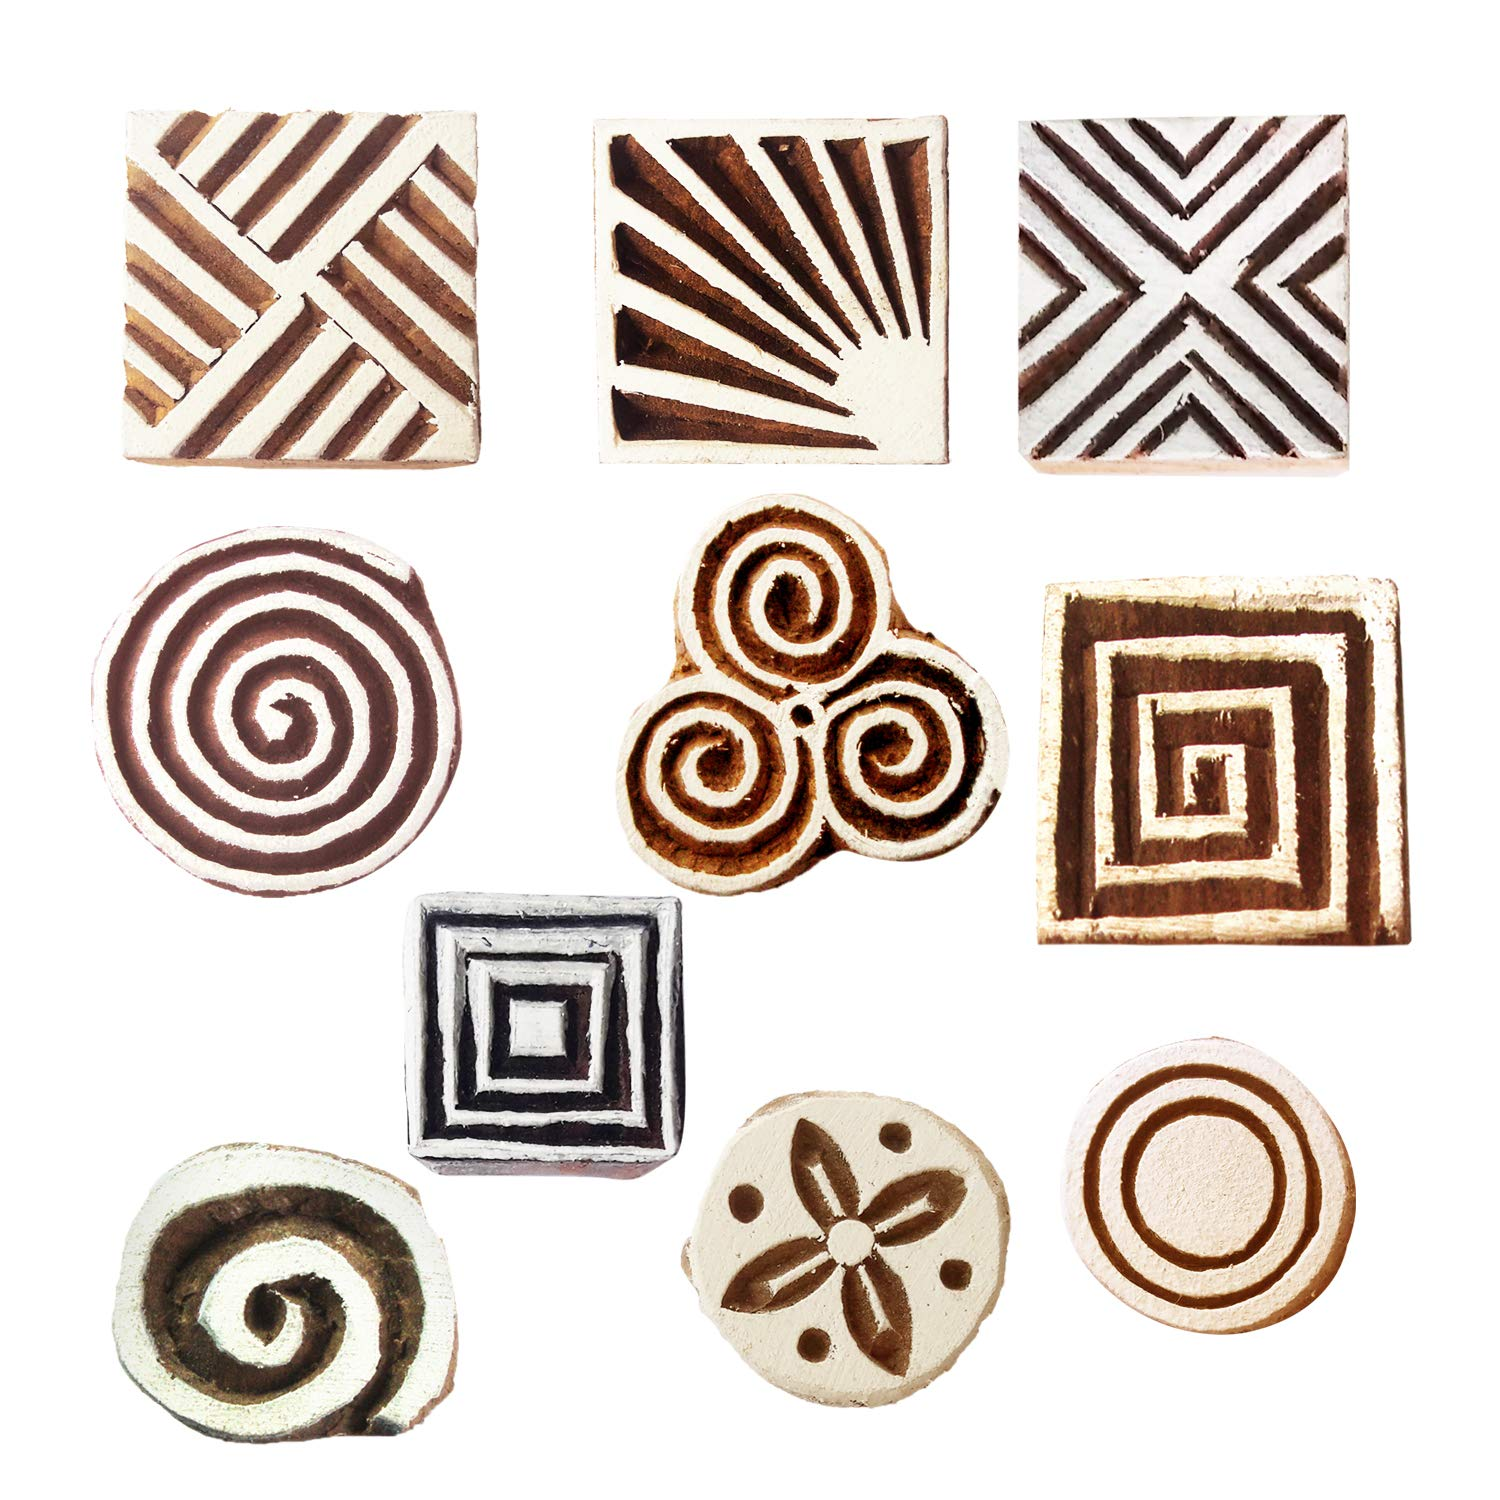 Royal Kraft Round Wooden Printing Stamps DIY Henna Fabric Textile Paper Clay Pottery Block Blocks Htag2191 Set of 10